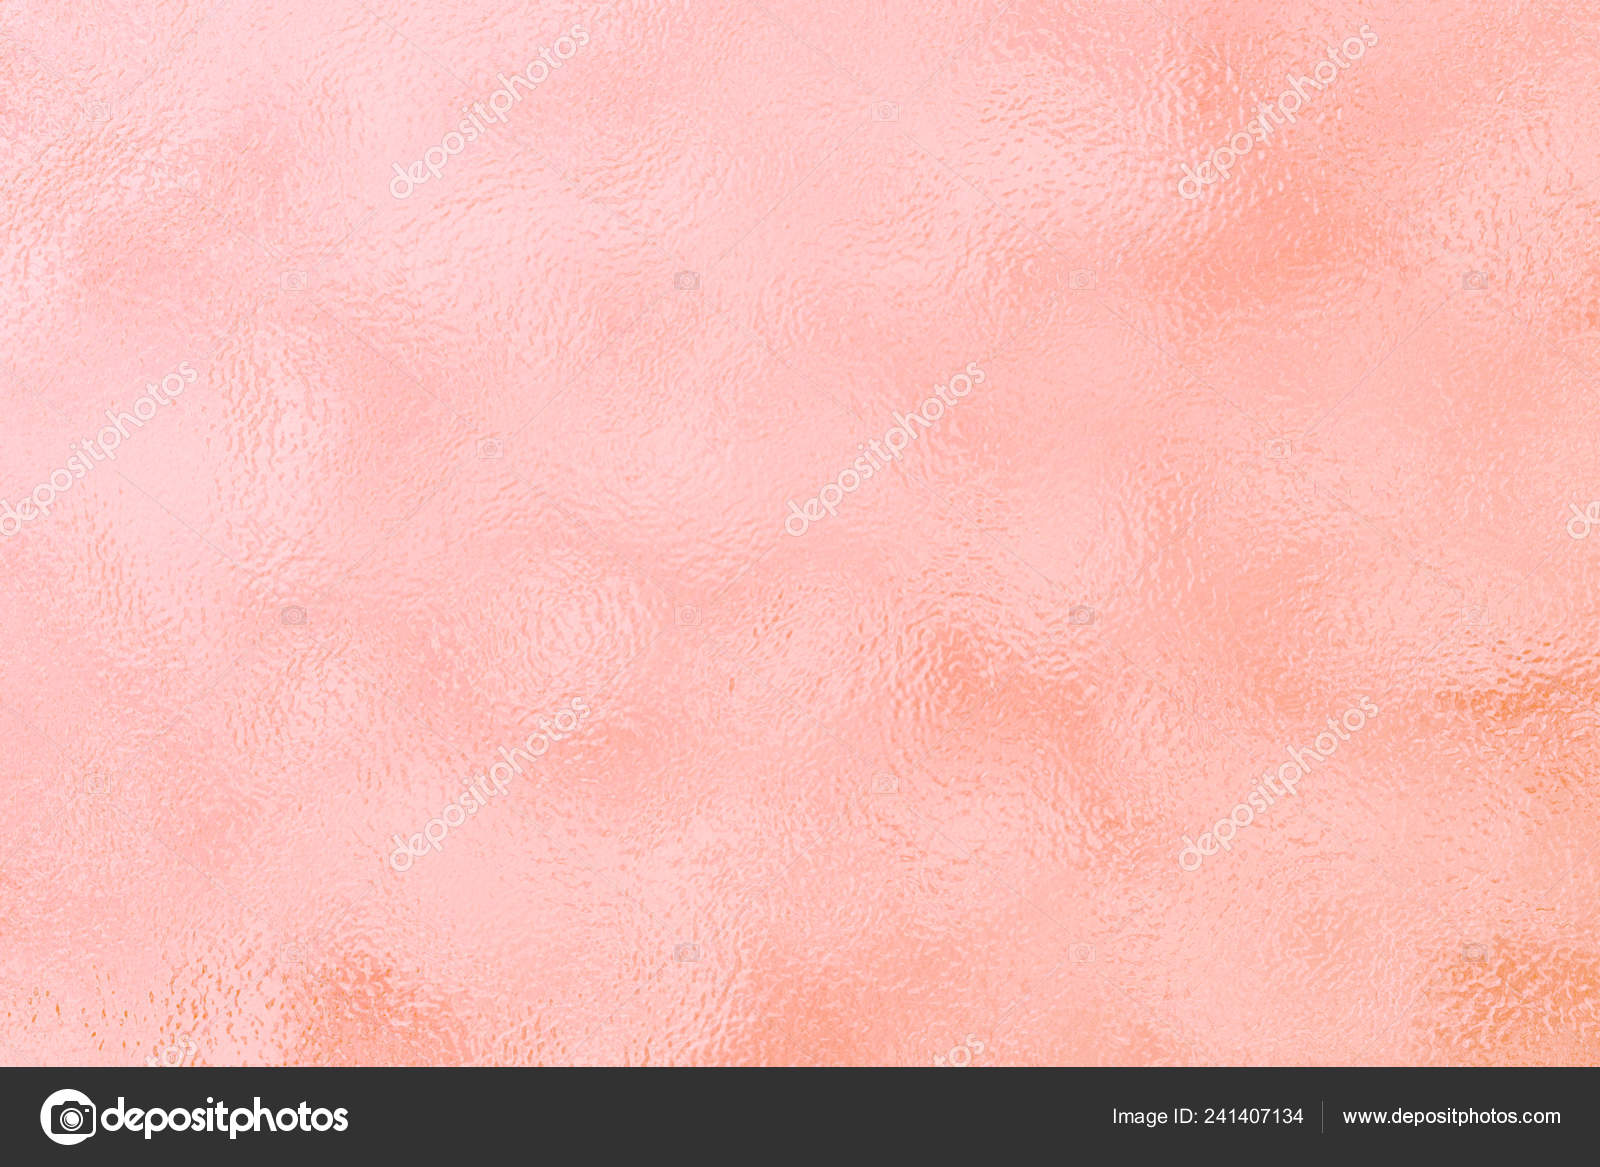 rose gold background trendy template for holiday designs party birthday wedding invitation web banner card rose gold metallic texture stock photo image by c ita tinta 241407134